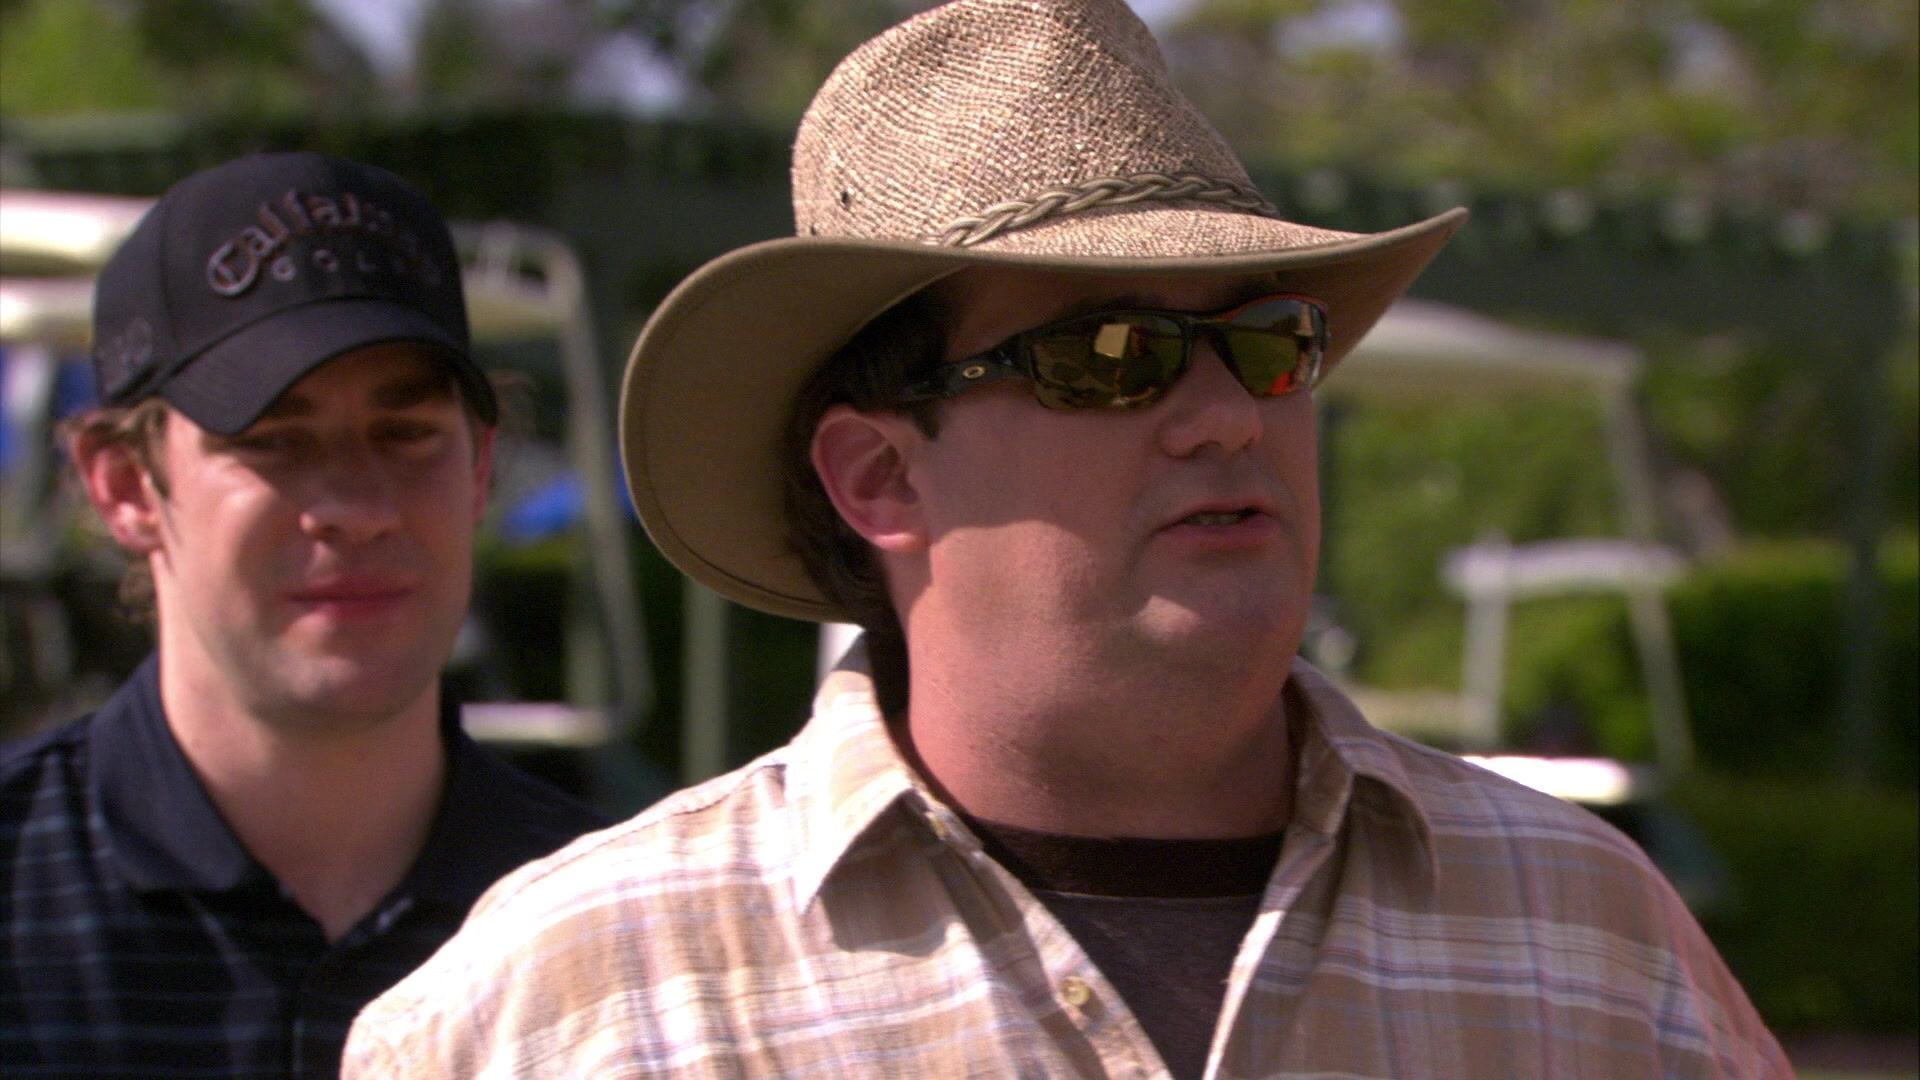 Oakley Sunglasses Worn by Brian Baumgartner (Kevin Malone) in The